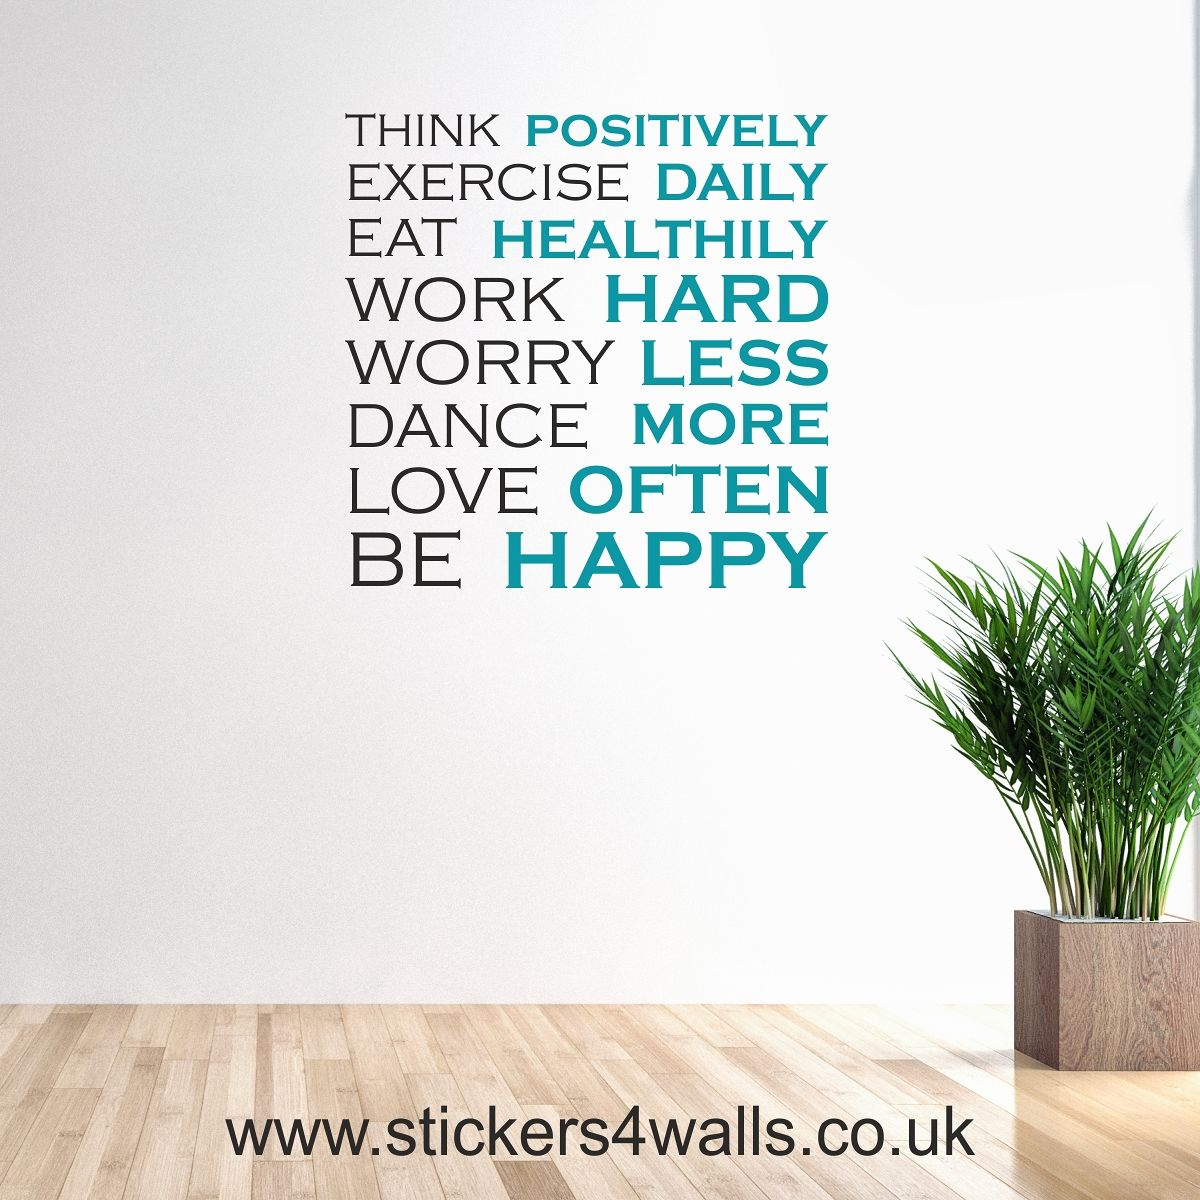 Inspirational wall sticker